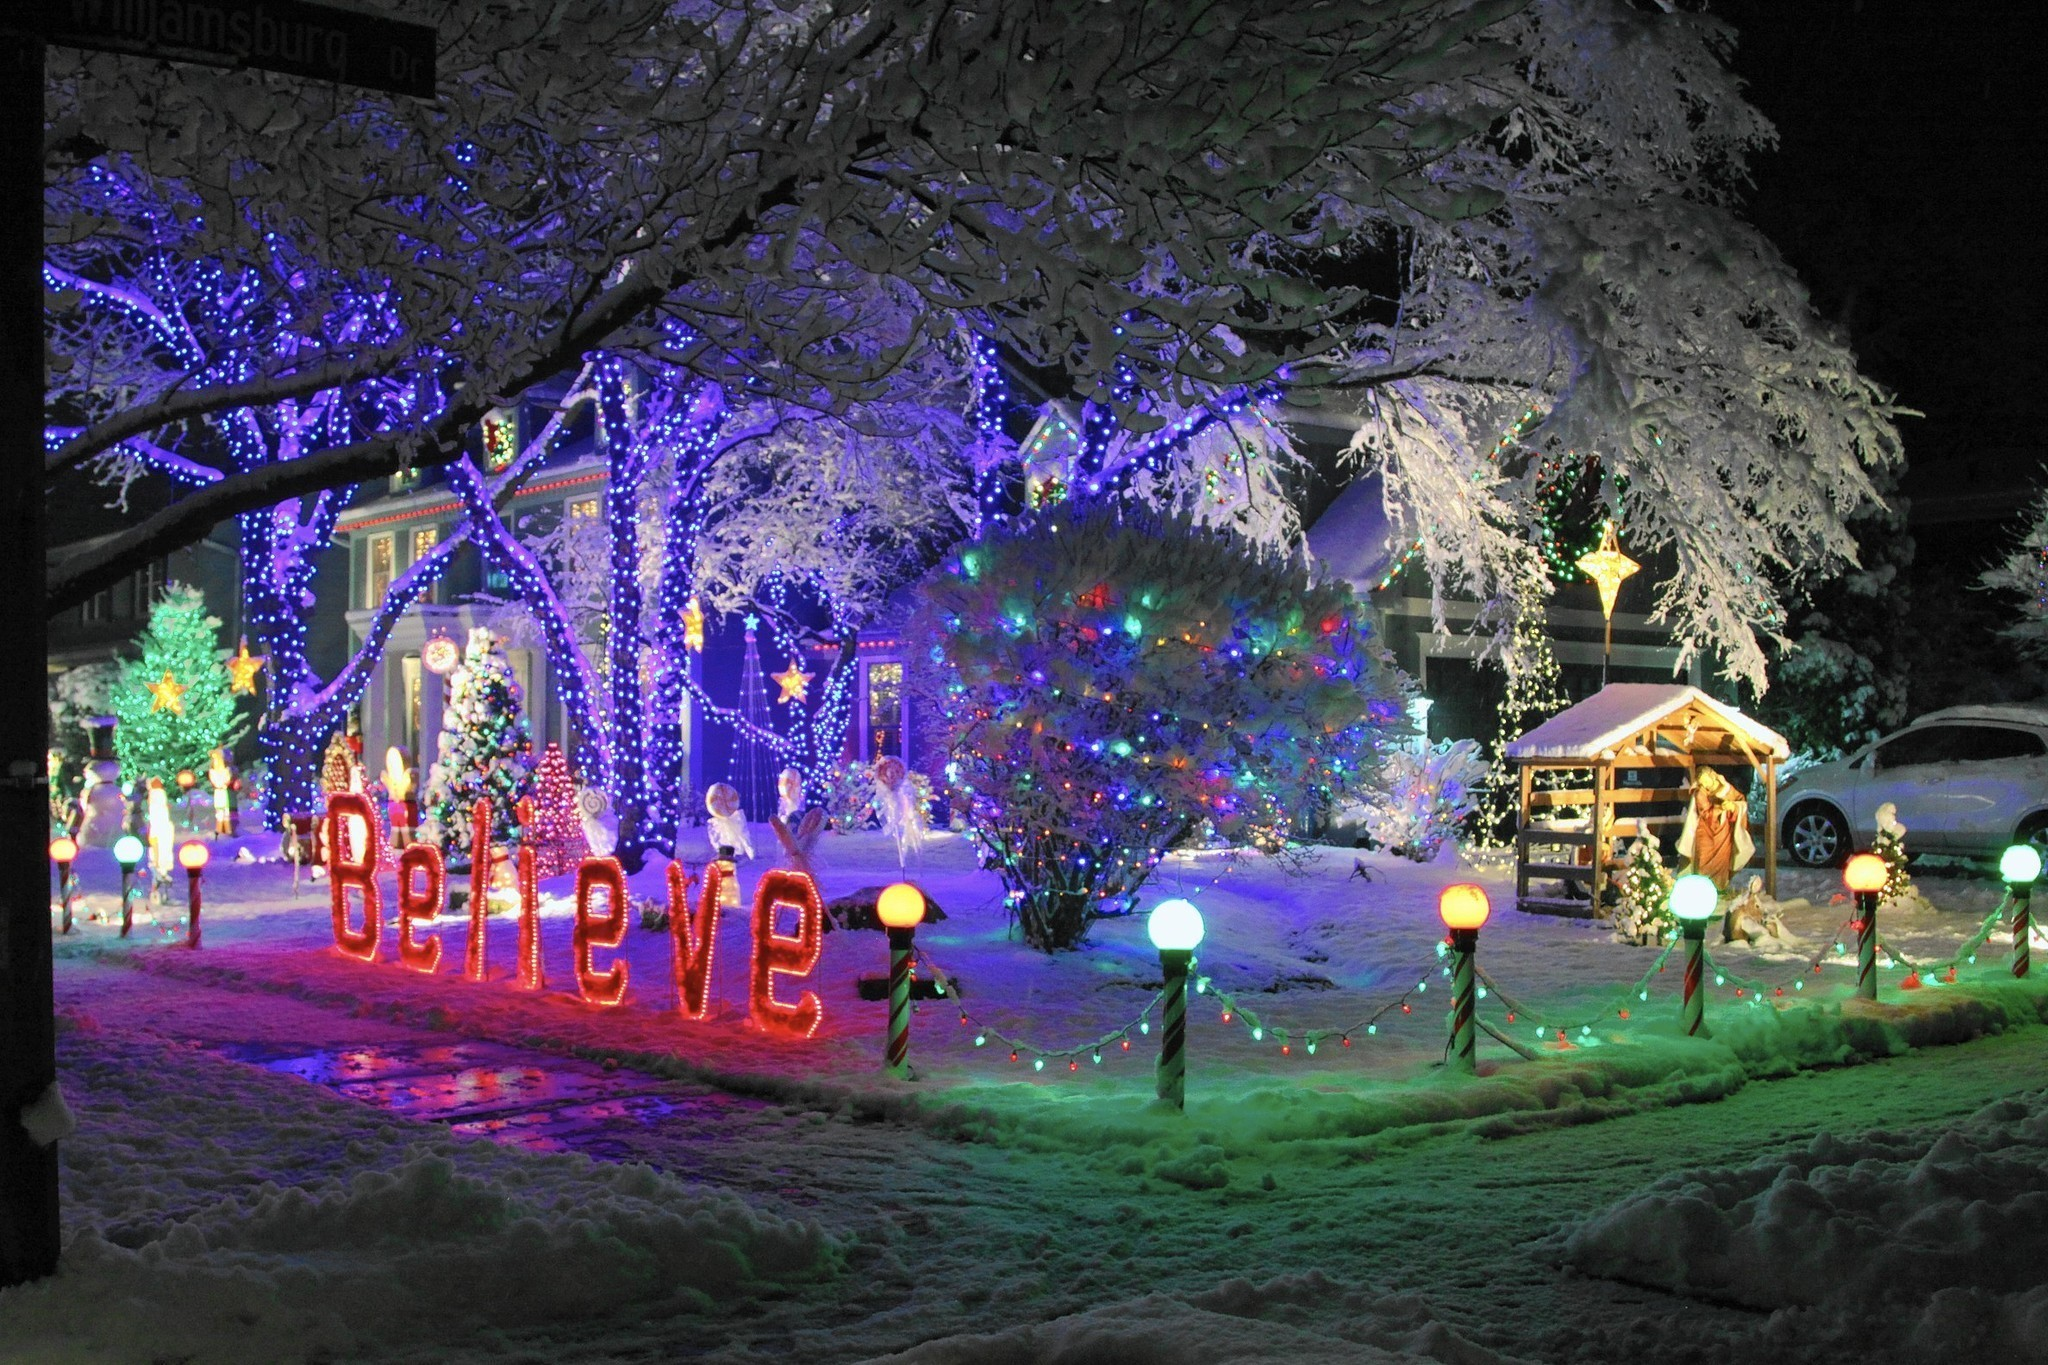 technology music and cubs define napervilles newer holiday light shows naperville sun